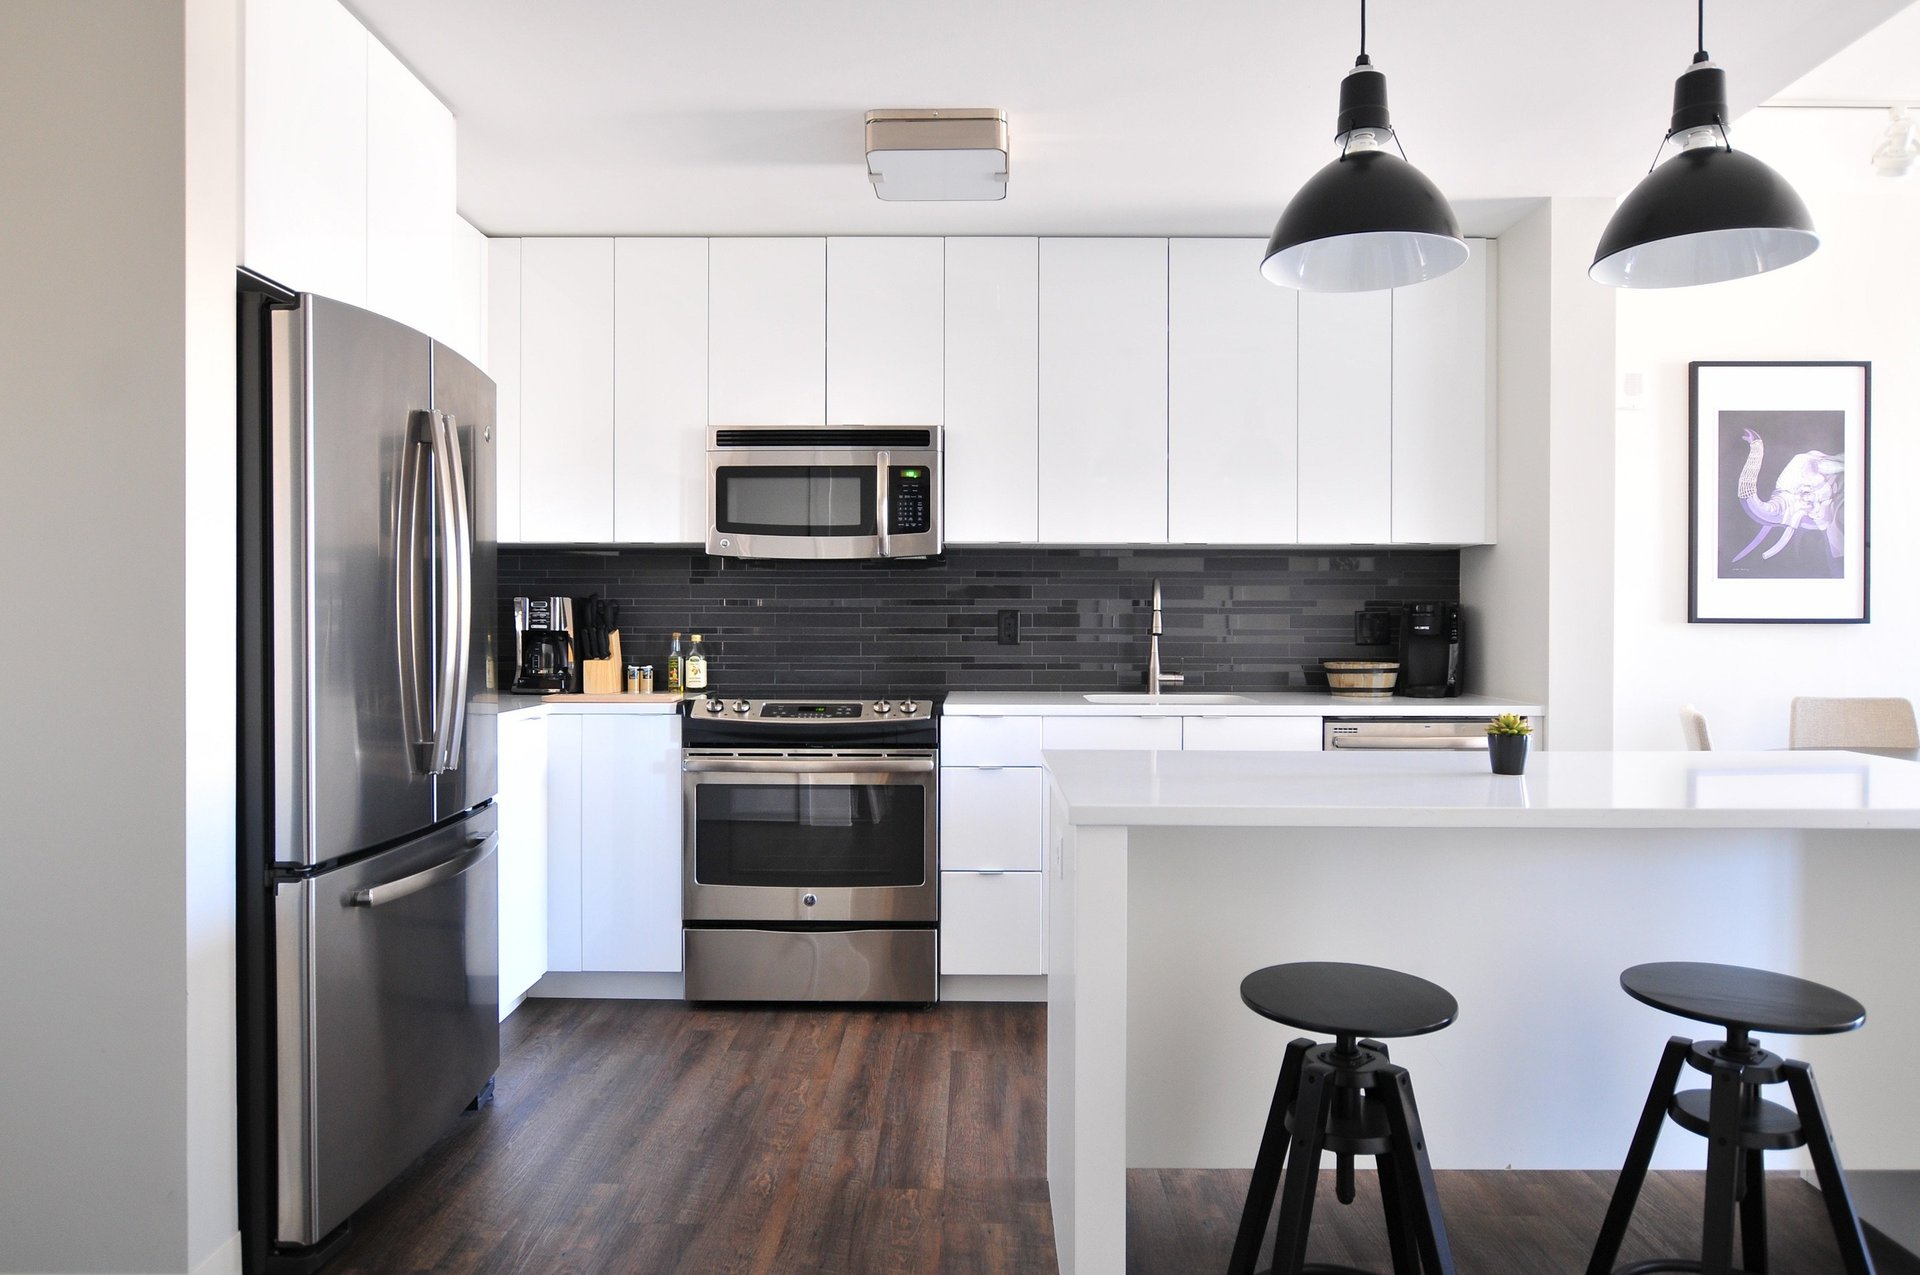 8 Functional and Refreshing Trends for a Kitchen Renovation